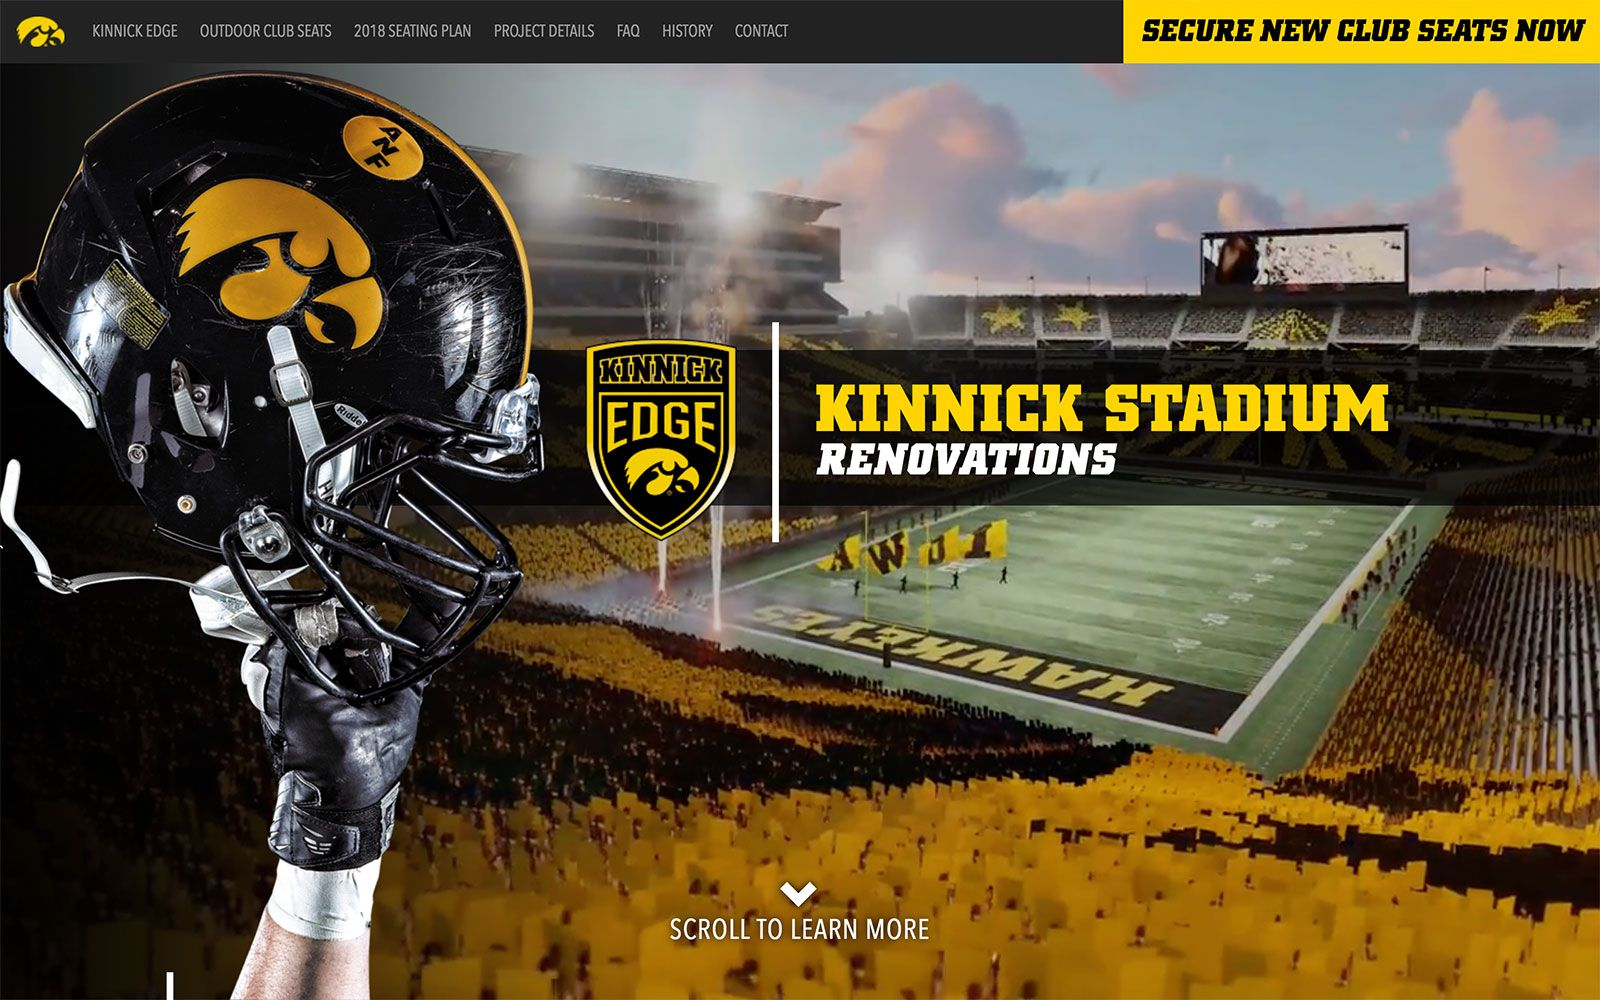 Kinnick Stadium Capital Campaign Website | <a href='http://kinnickedge.org/' target='_blank'>Visit Site <i class='nc-icon-glyph arrows-1_share-91'></i></a><br><span>University of Iowa</span>